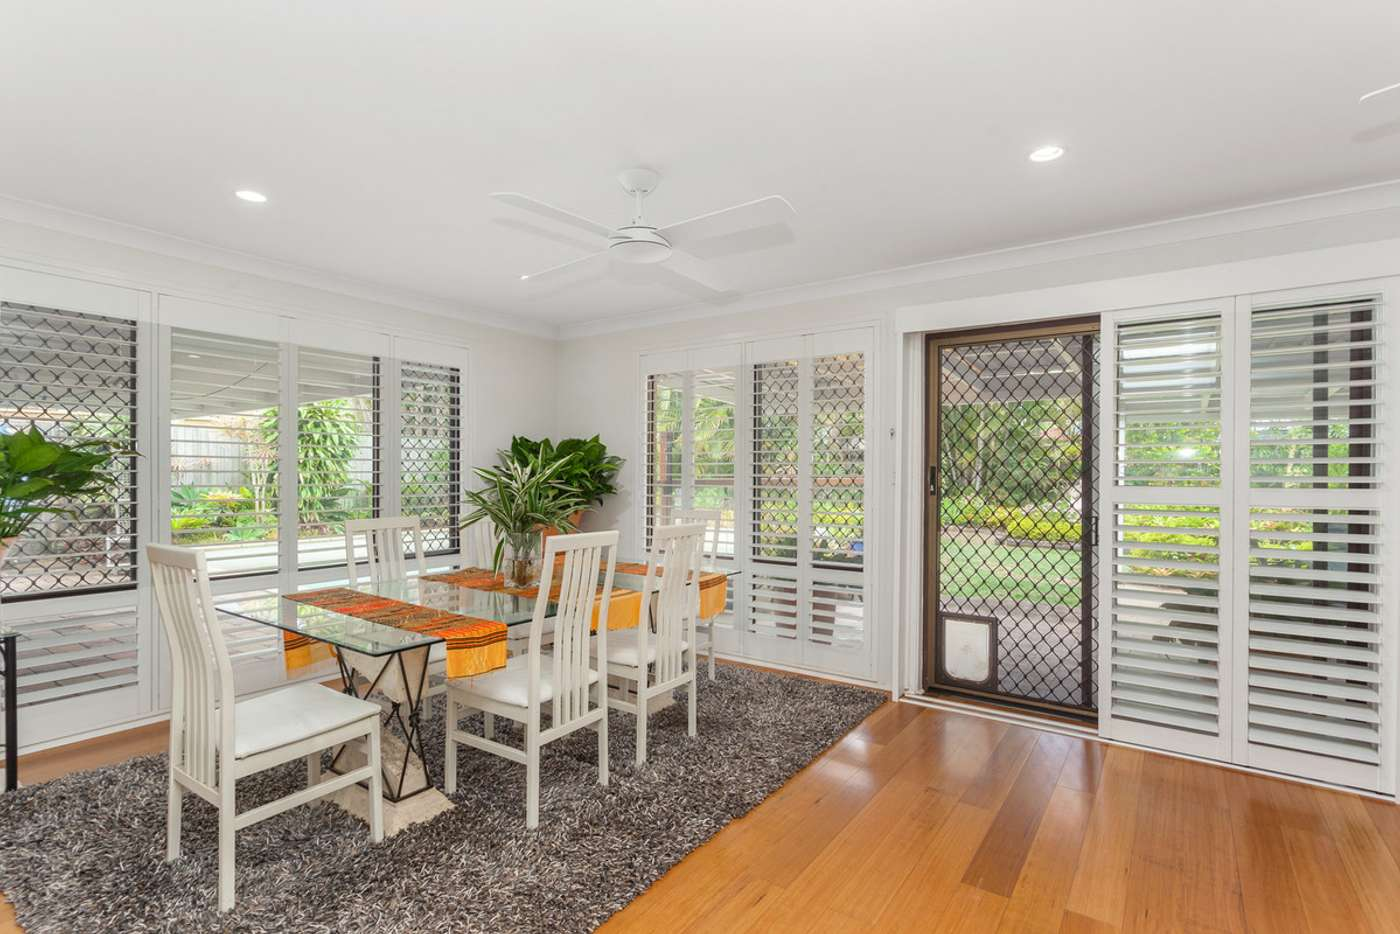 Fifth view of Homely house listing, 27 Anthony Drive, Burleigh Waters QLD 4220